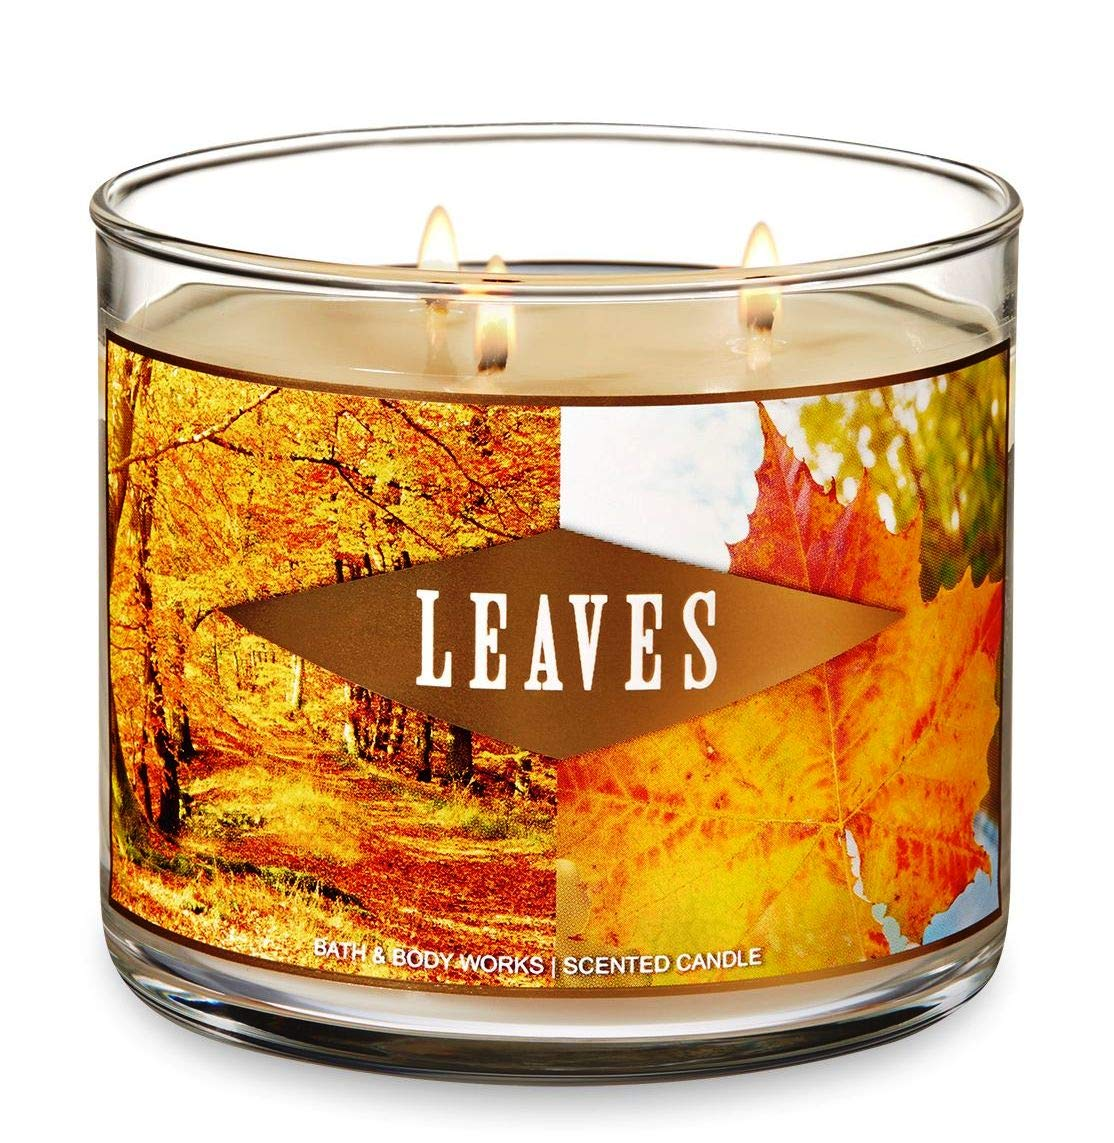 Bath and Body Works Leaves Candle - Large 14.5 Ounce 3-wick Limited Edition Fall Autumn Fragrance by Bath & Body Works